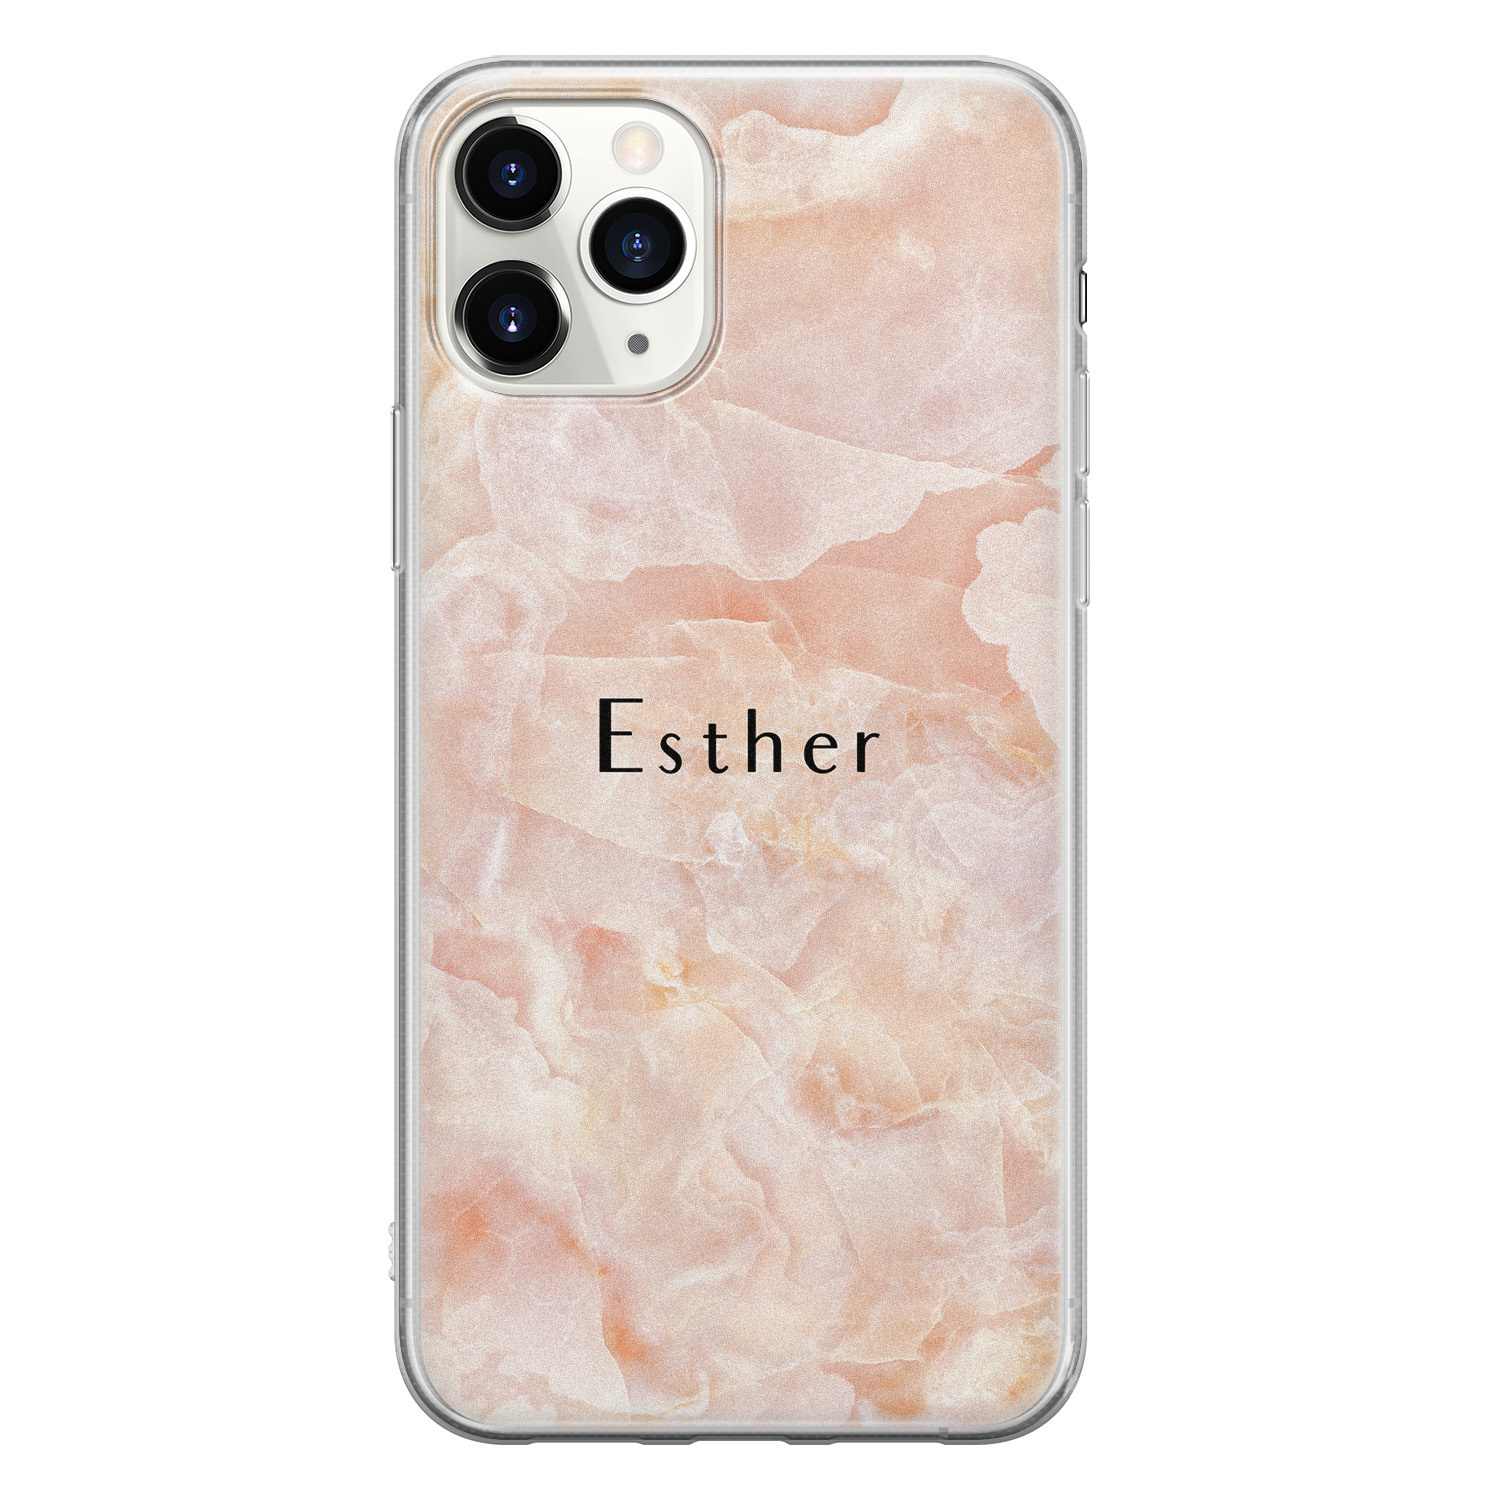 iPhone 11 Pro Max siliconen hoesje ontwerpen - Marble sunkissed